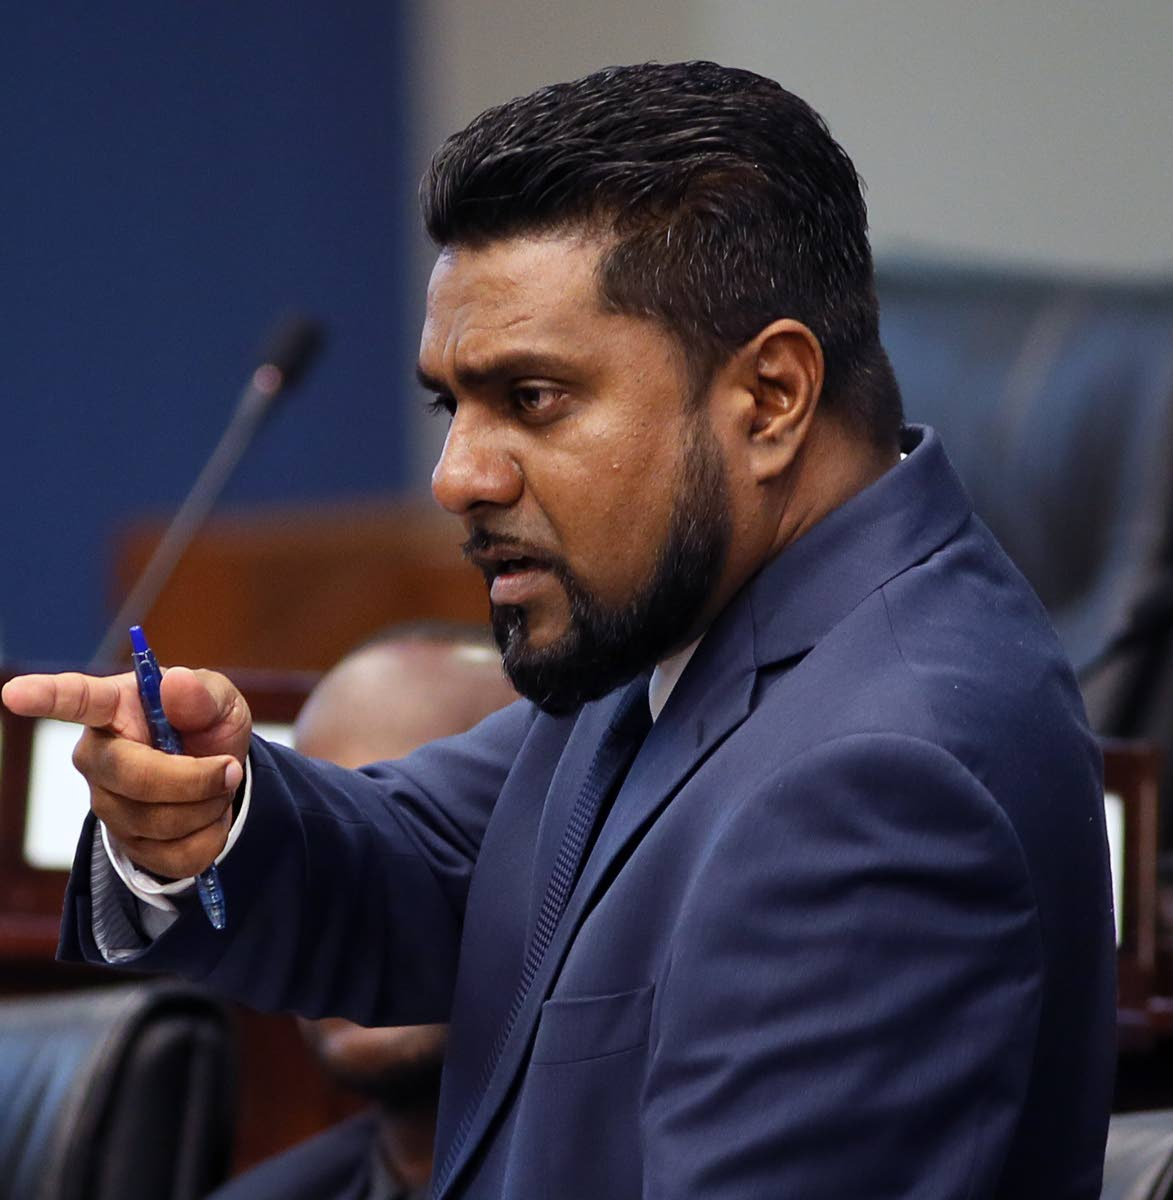 RETAINED: Attorney Gerald Ramdeen who has been retained to seek the interests of an American girl, 4, who claims she was raped by the son of a former government minister.